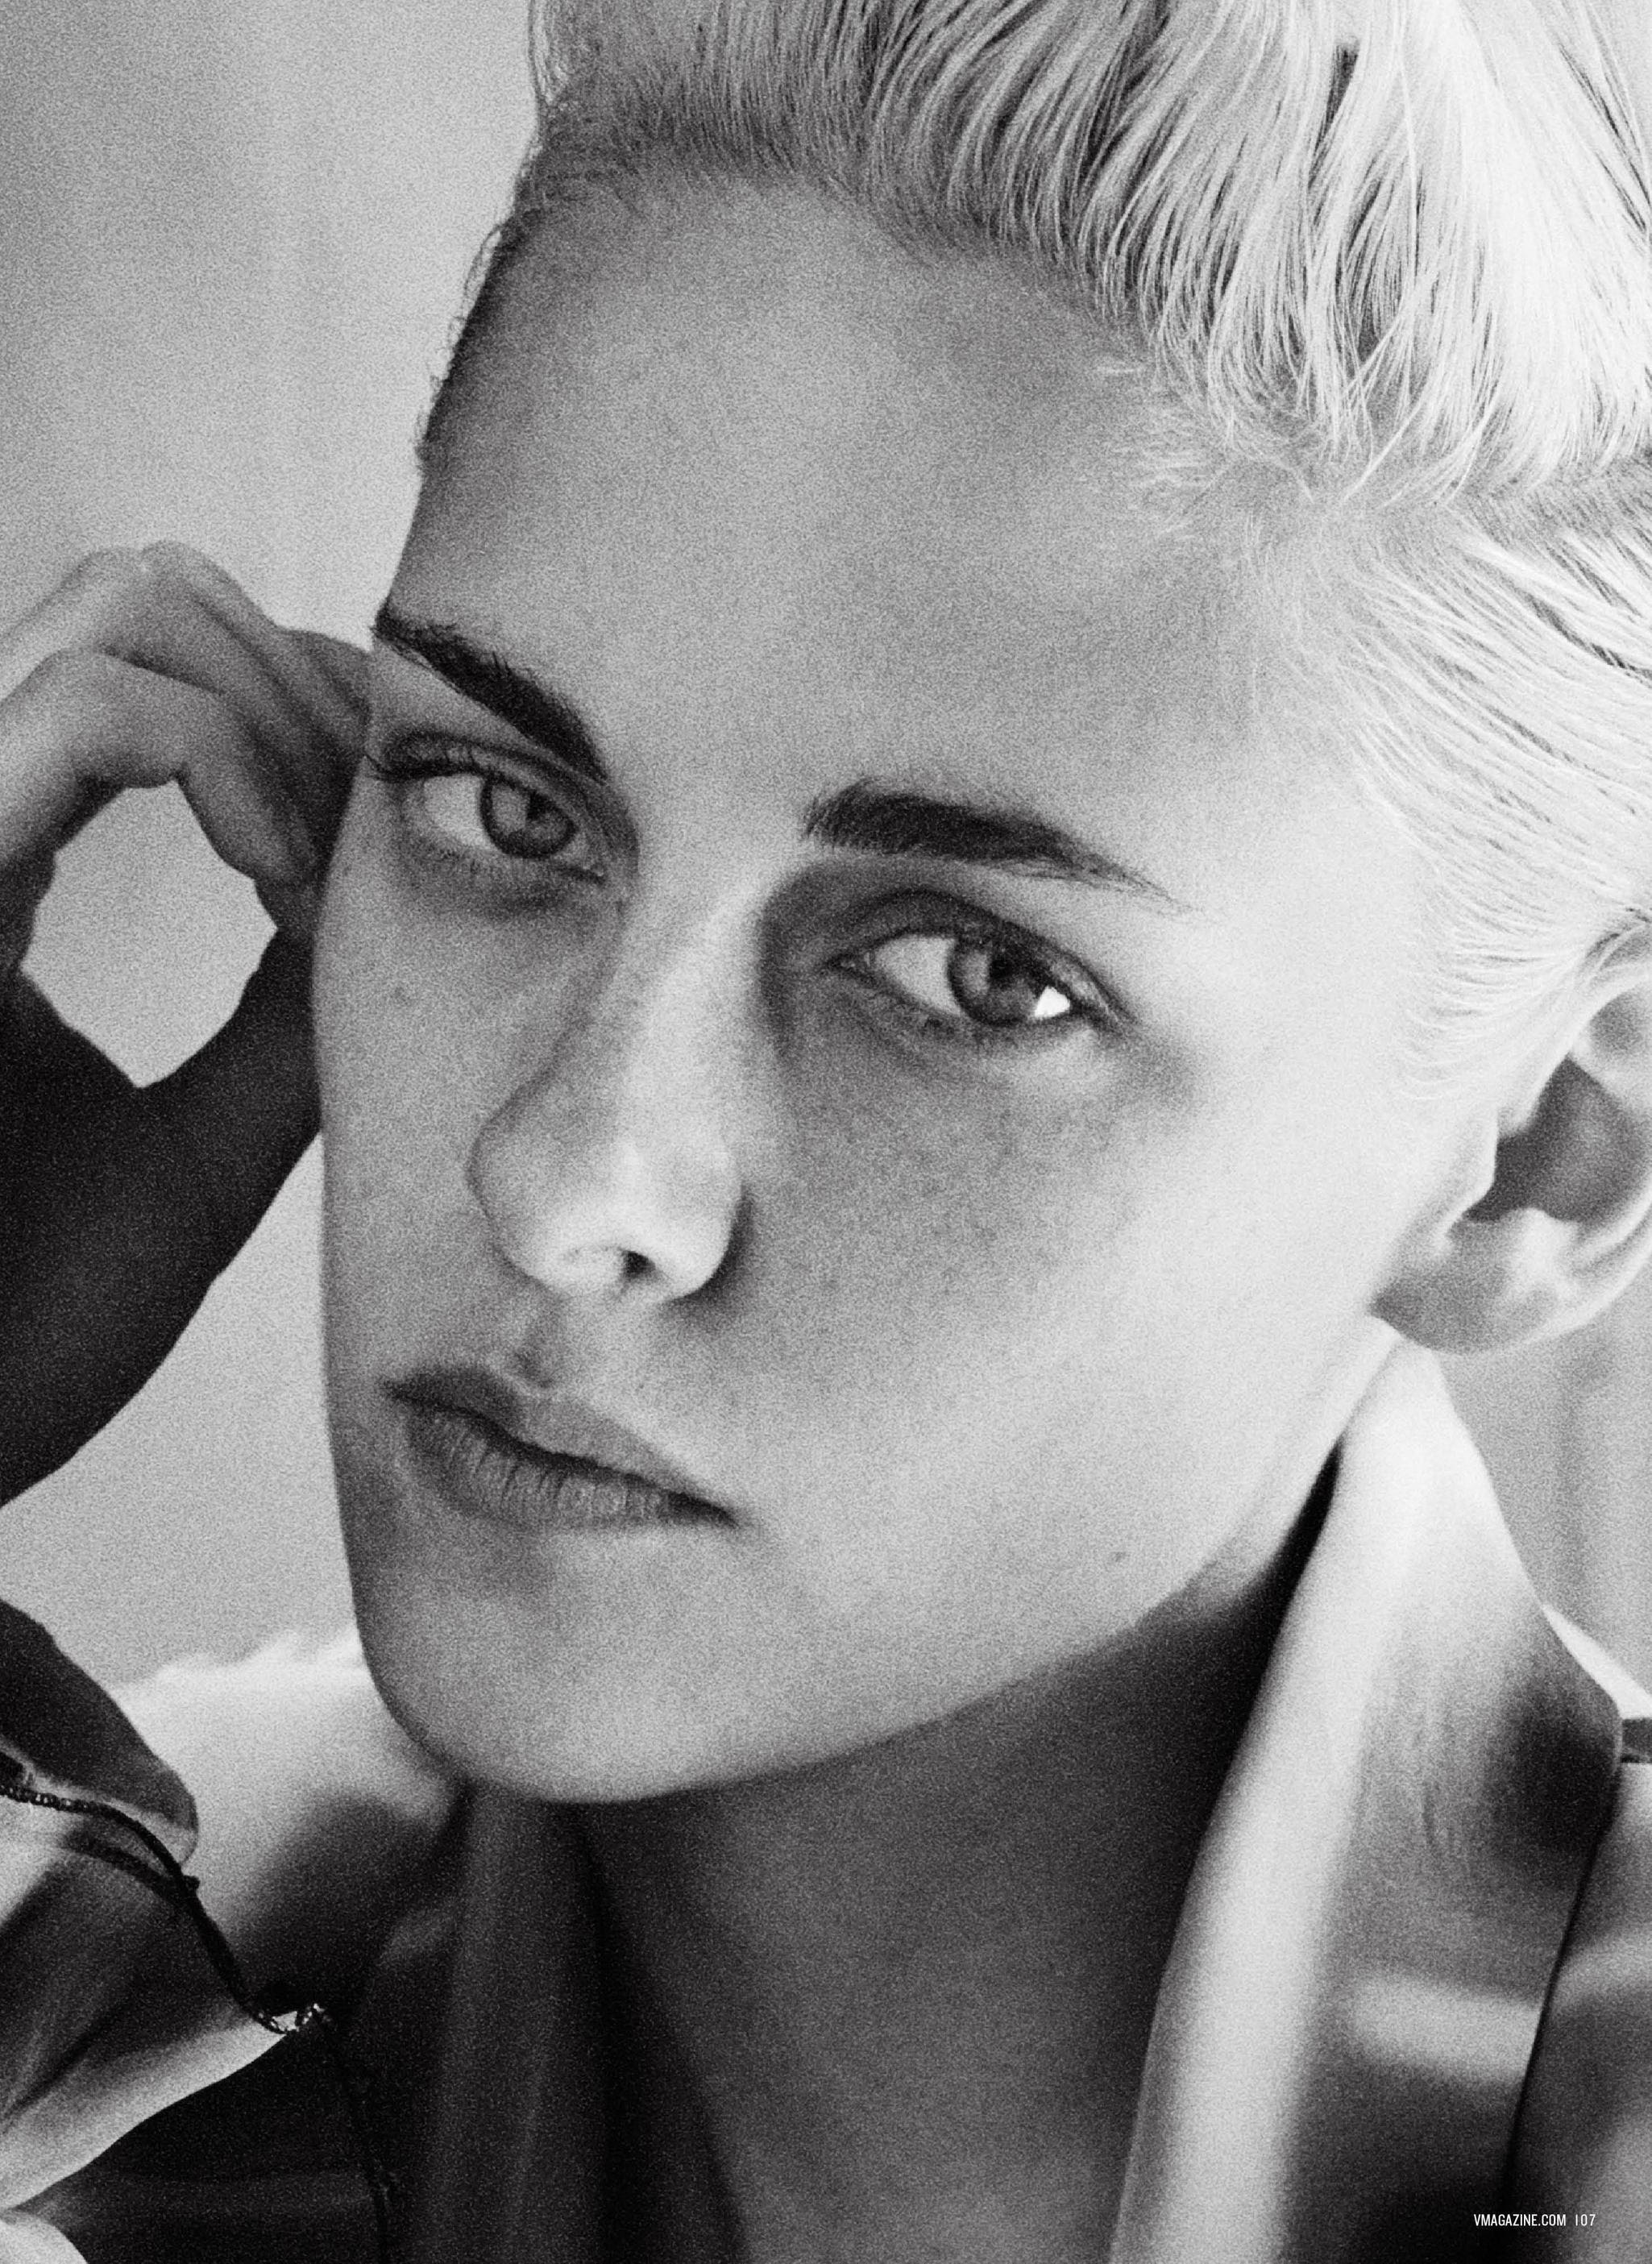 Kristen Stewart in V magazine photoshoot